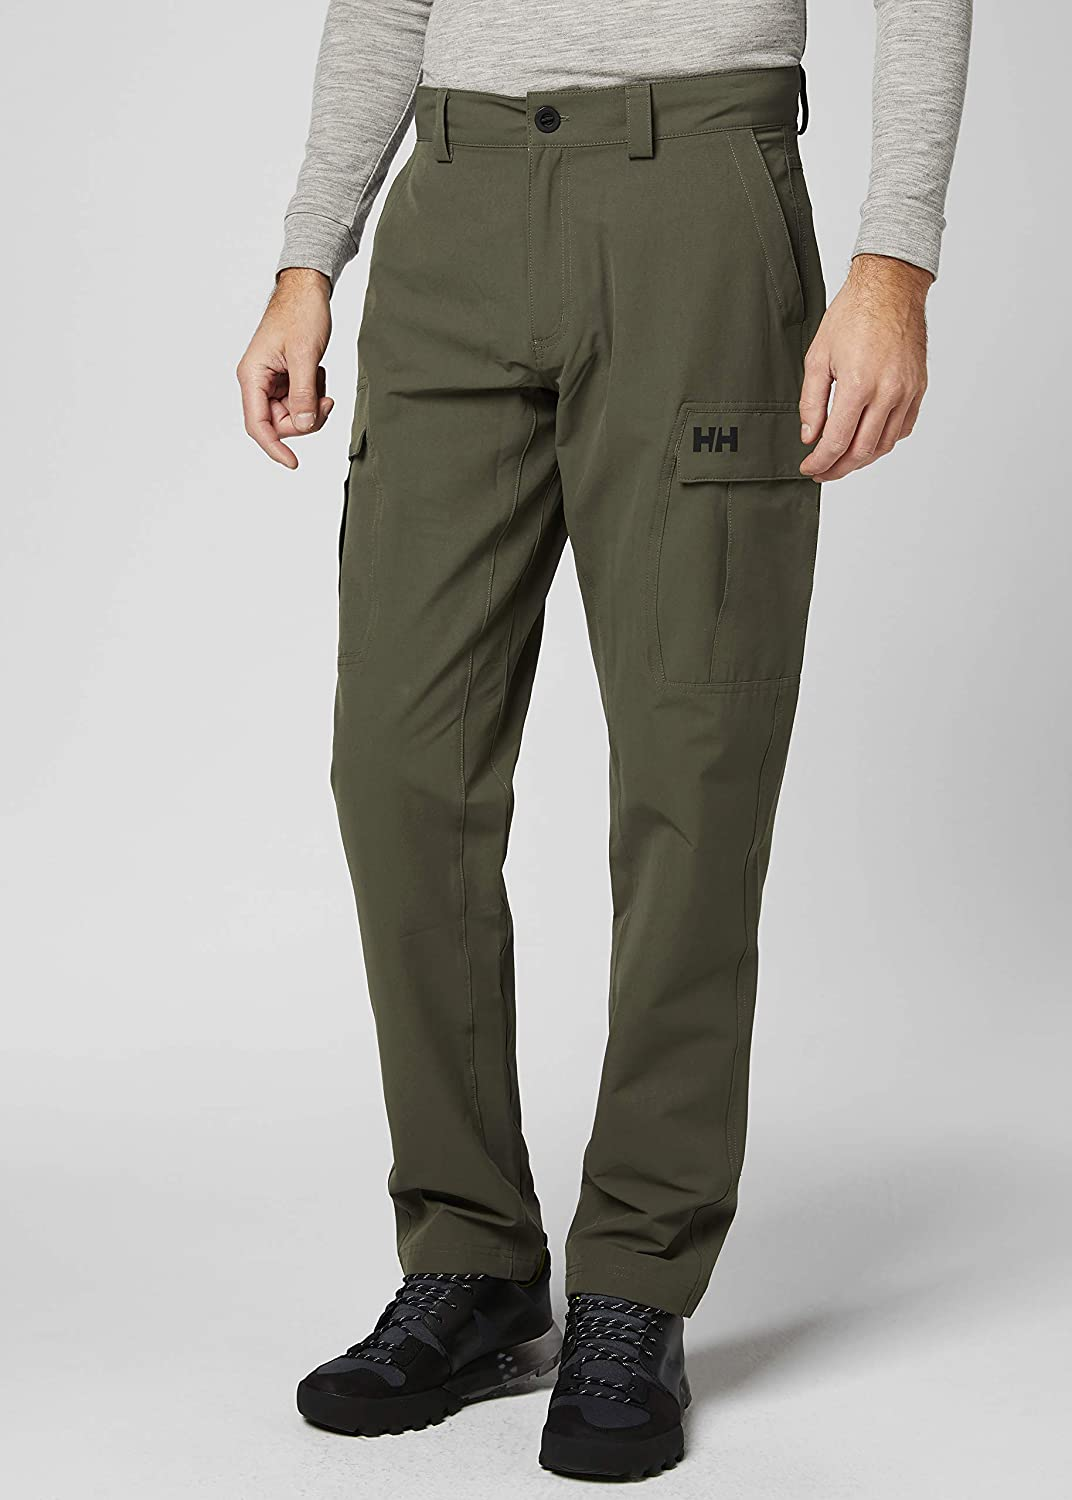 Helly-Hansen Hh Quickdry Cargo Pant